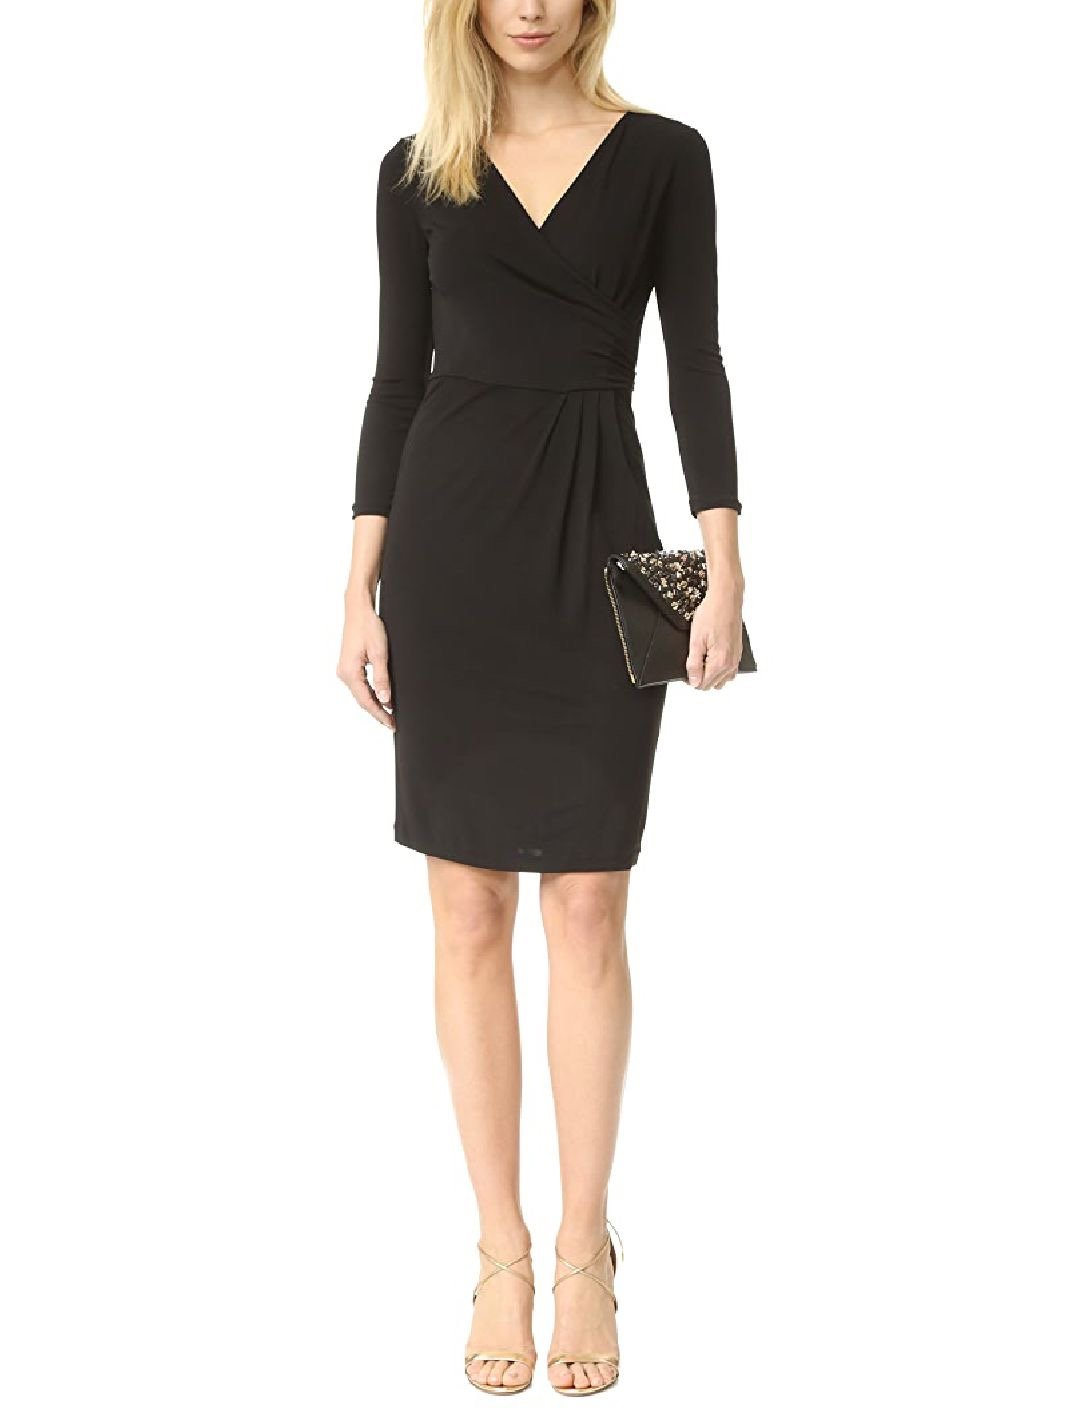 Calista Wrap-Effect Mini Dress - The Bobby Boga